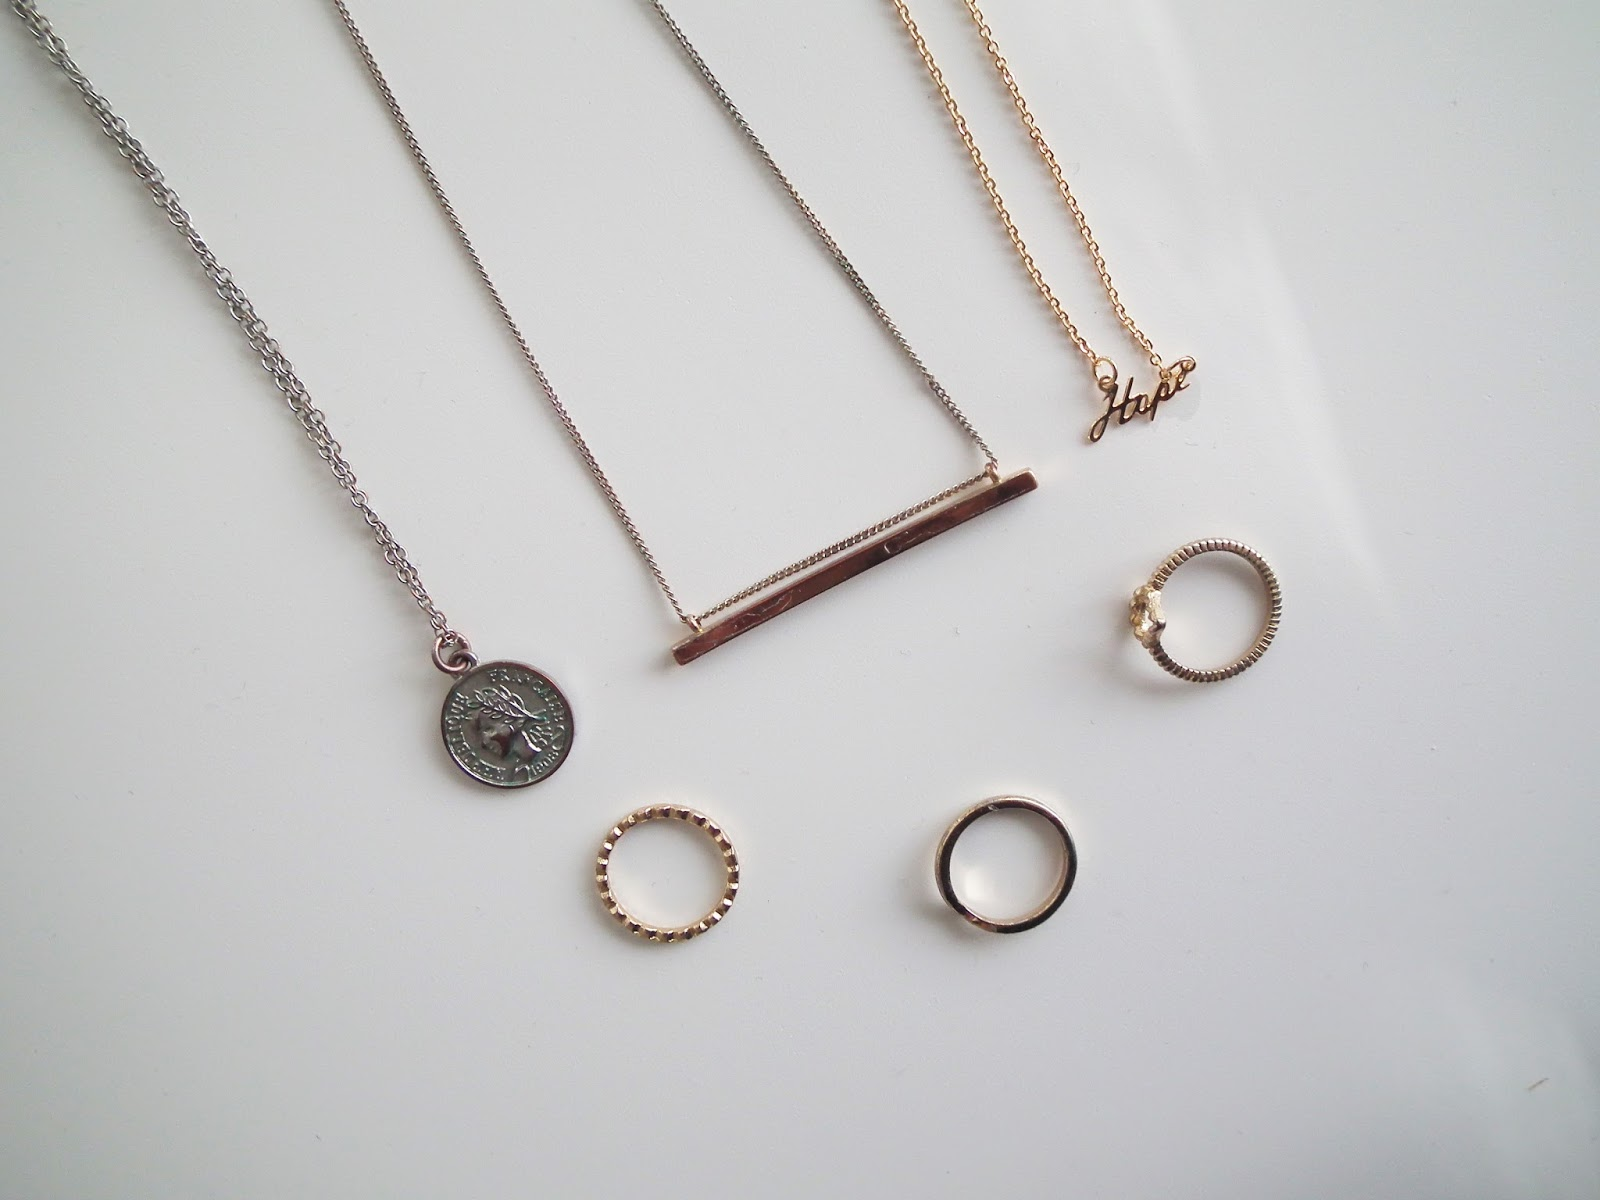 Accessories Dainty Necklaces Jewellery